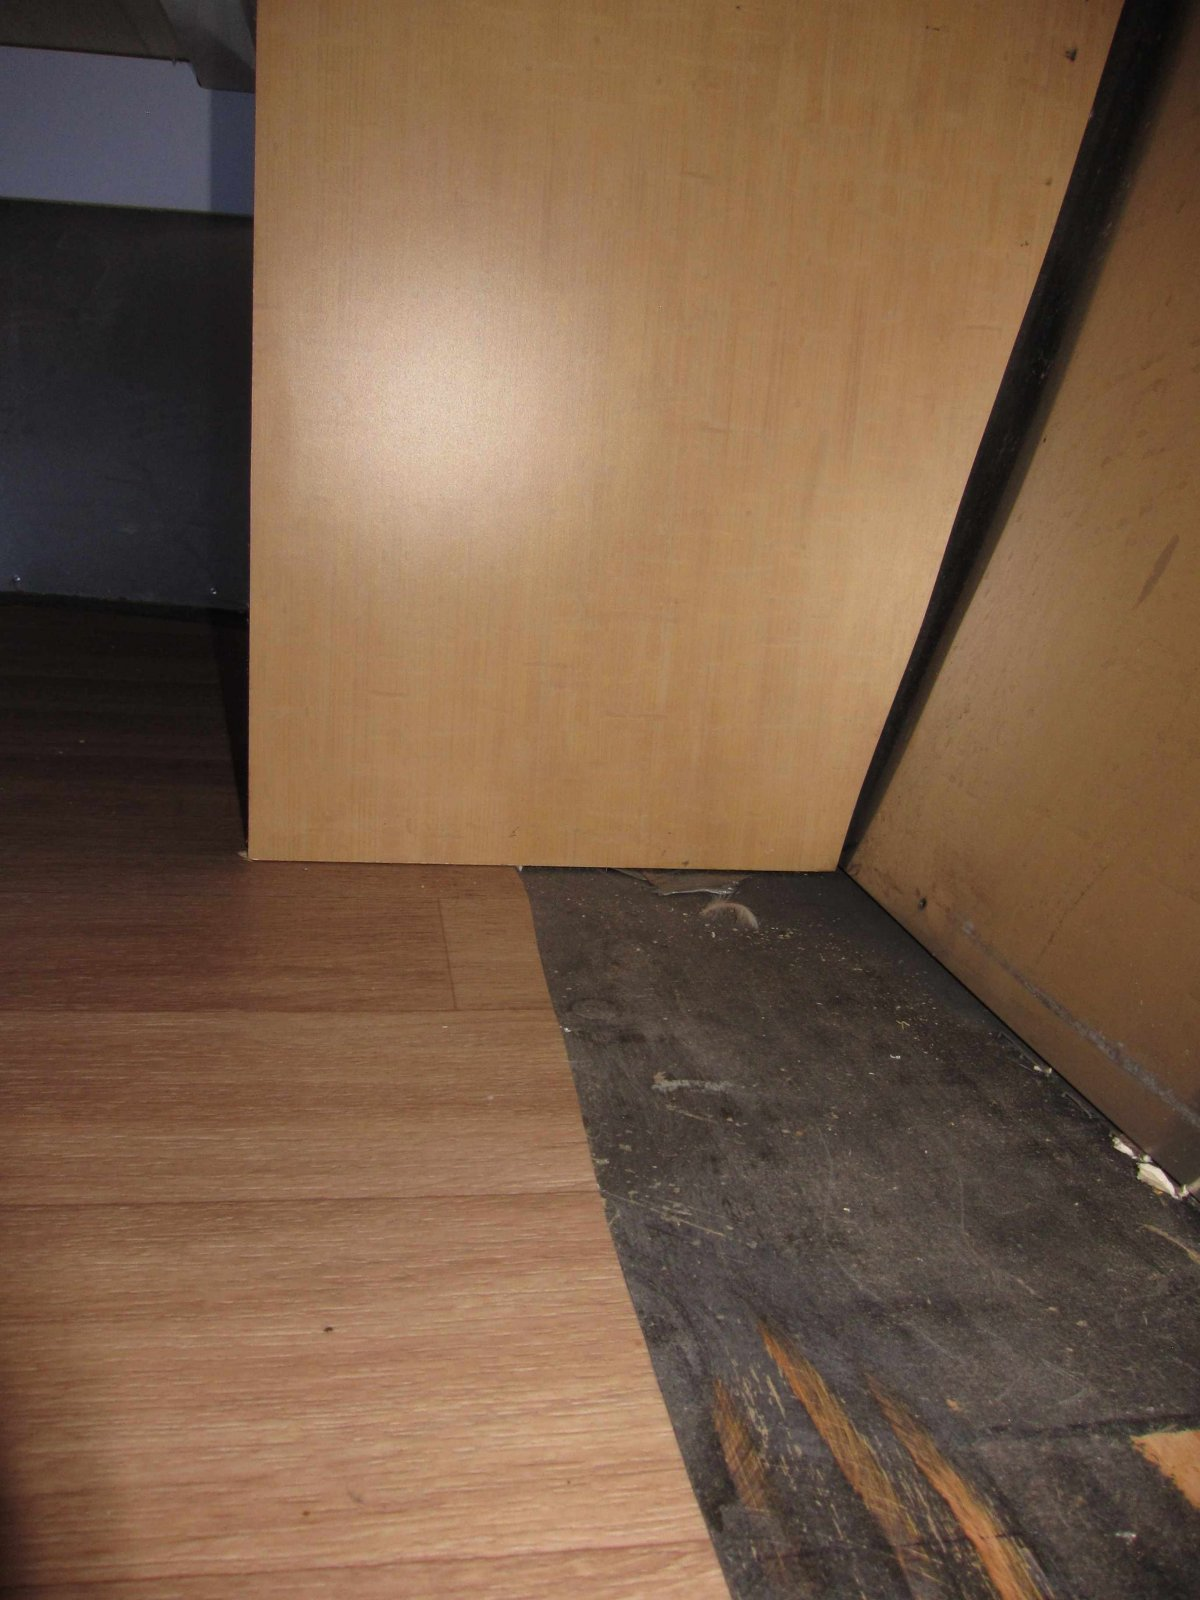 Click image for larger version  Name:Front of the trailer under the bed.jpg Views:54 Size:230.5 KB ID:222098